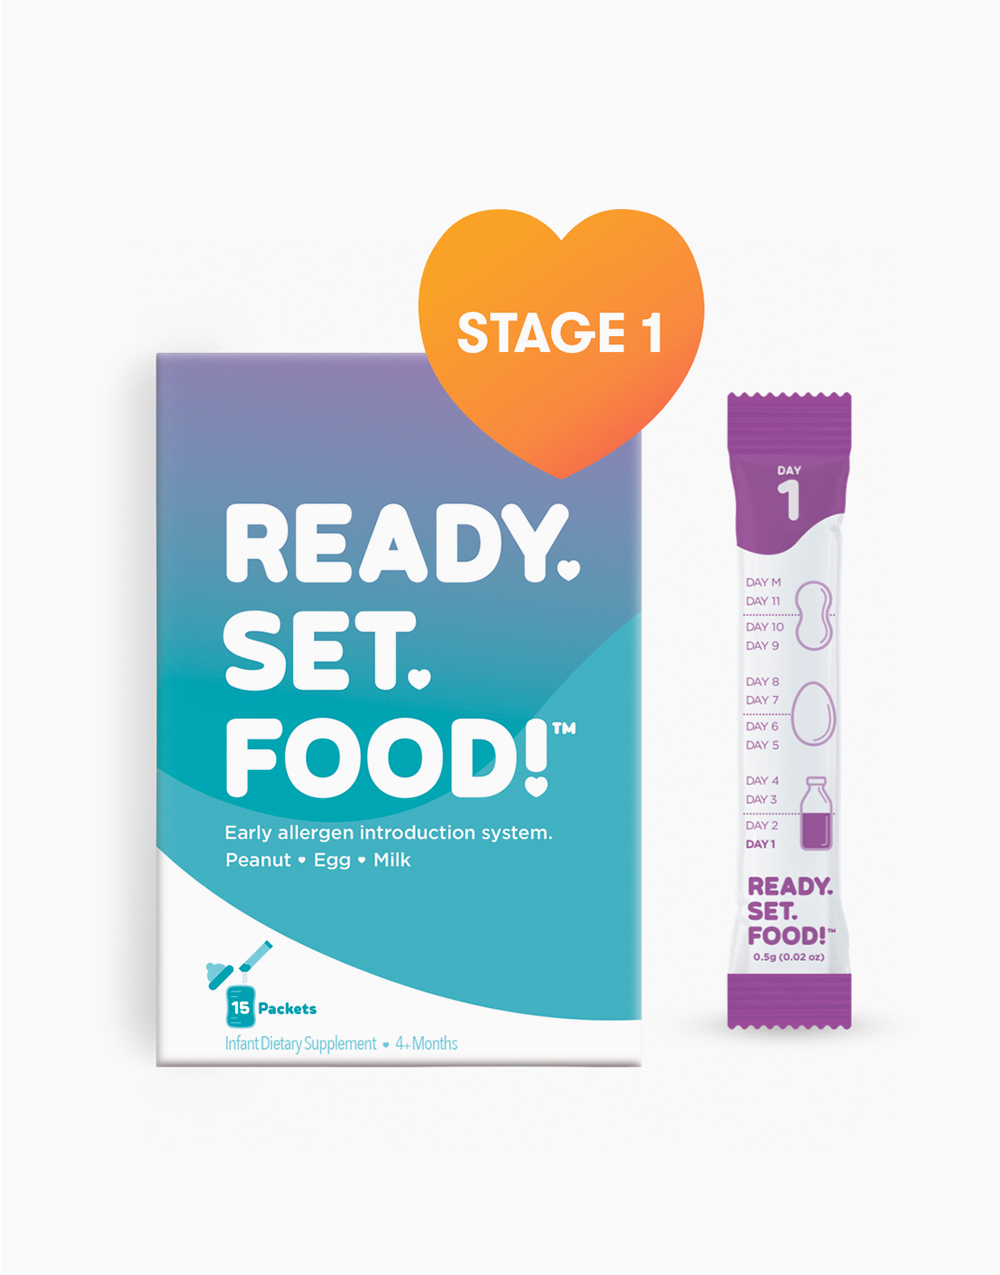 Stage 1, 15 Days: Early Allergen Introduction for Babies for Allergy Prevention, Peanut, Egg & Milk by Ready, Set, Food!